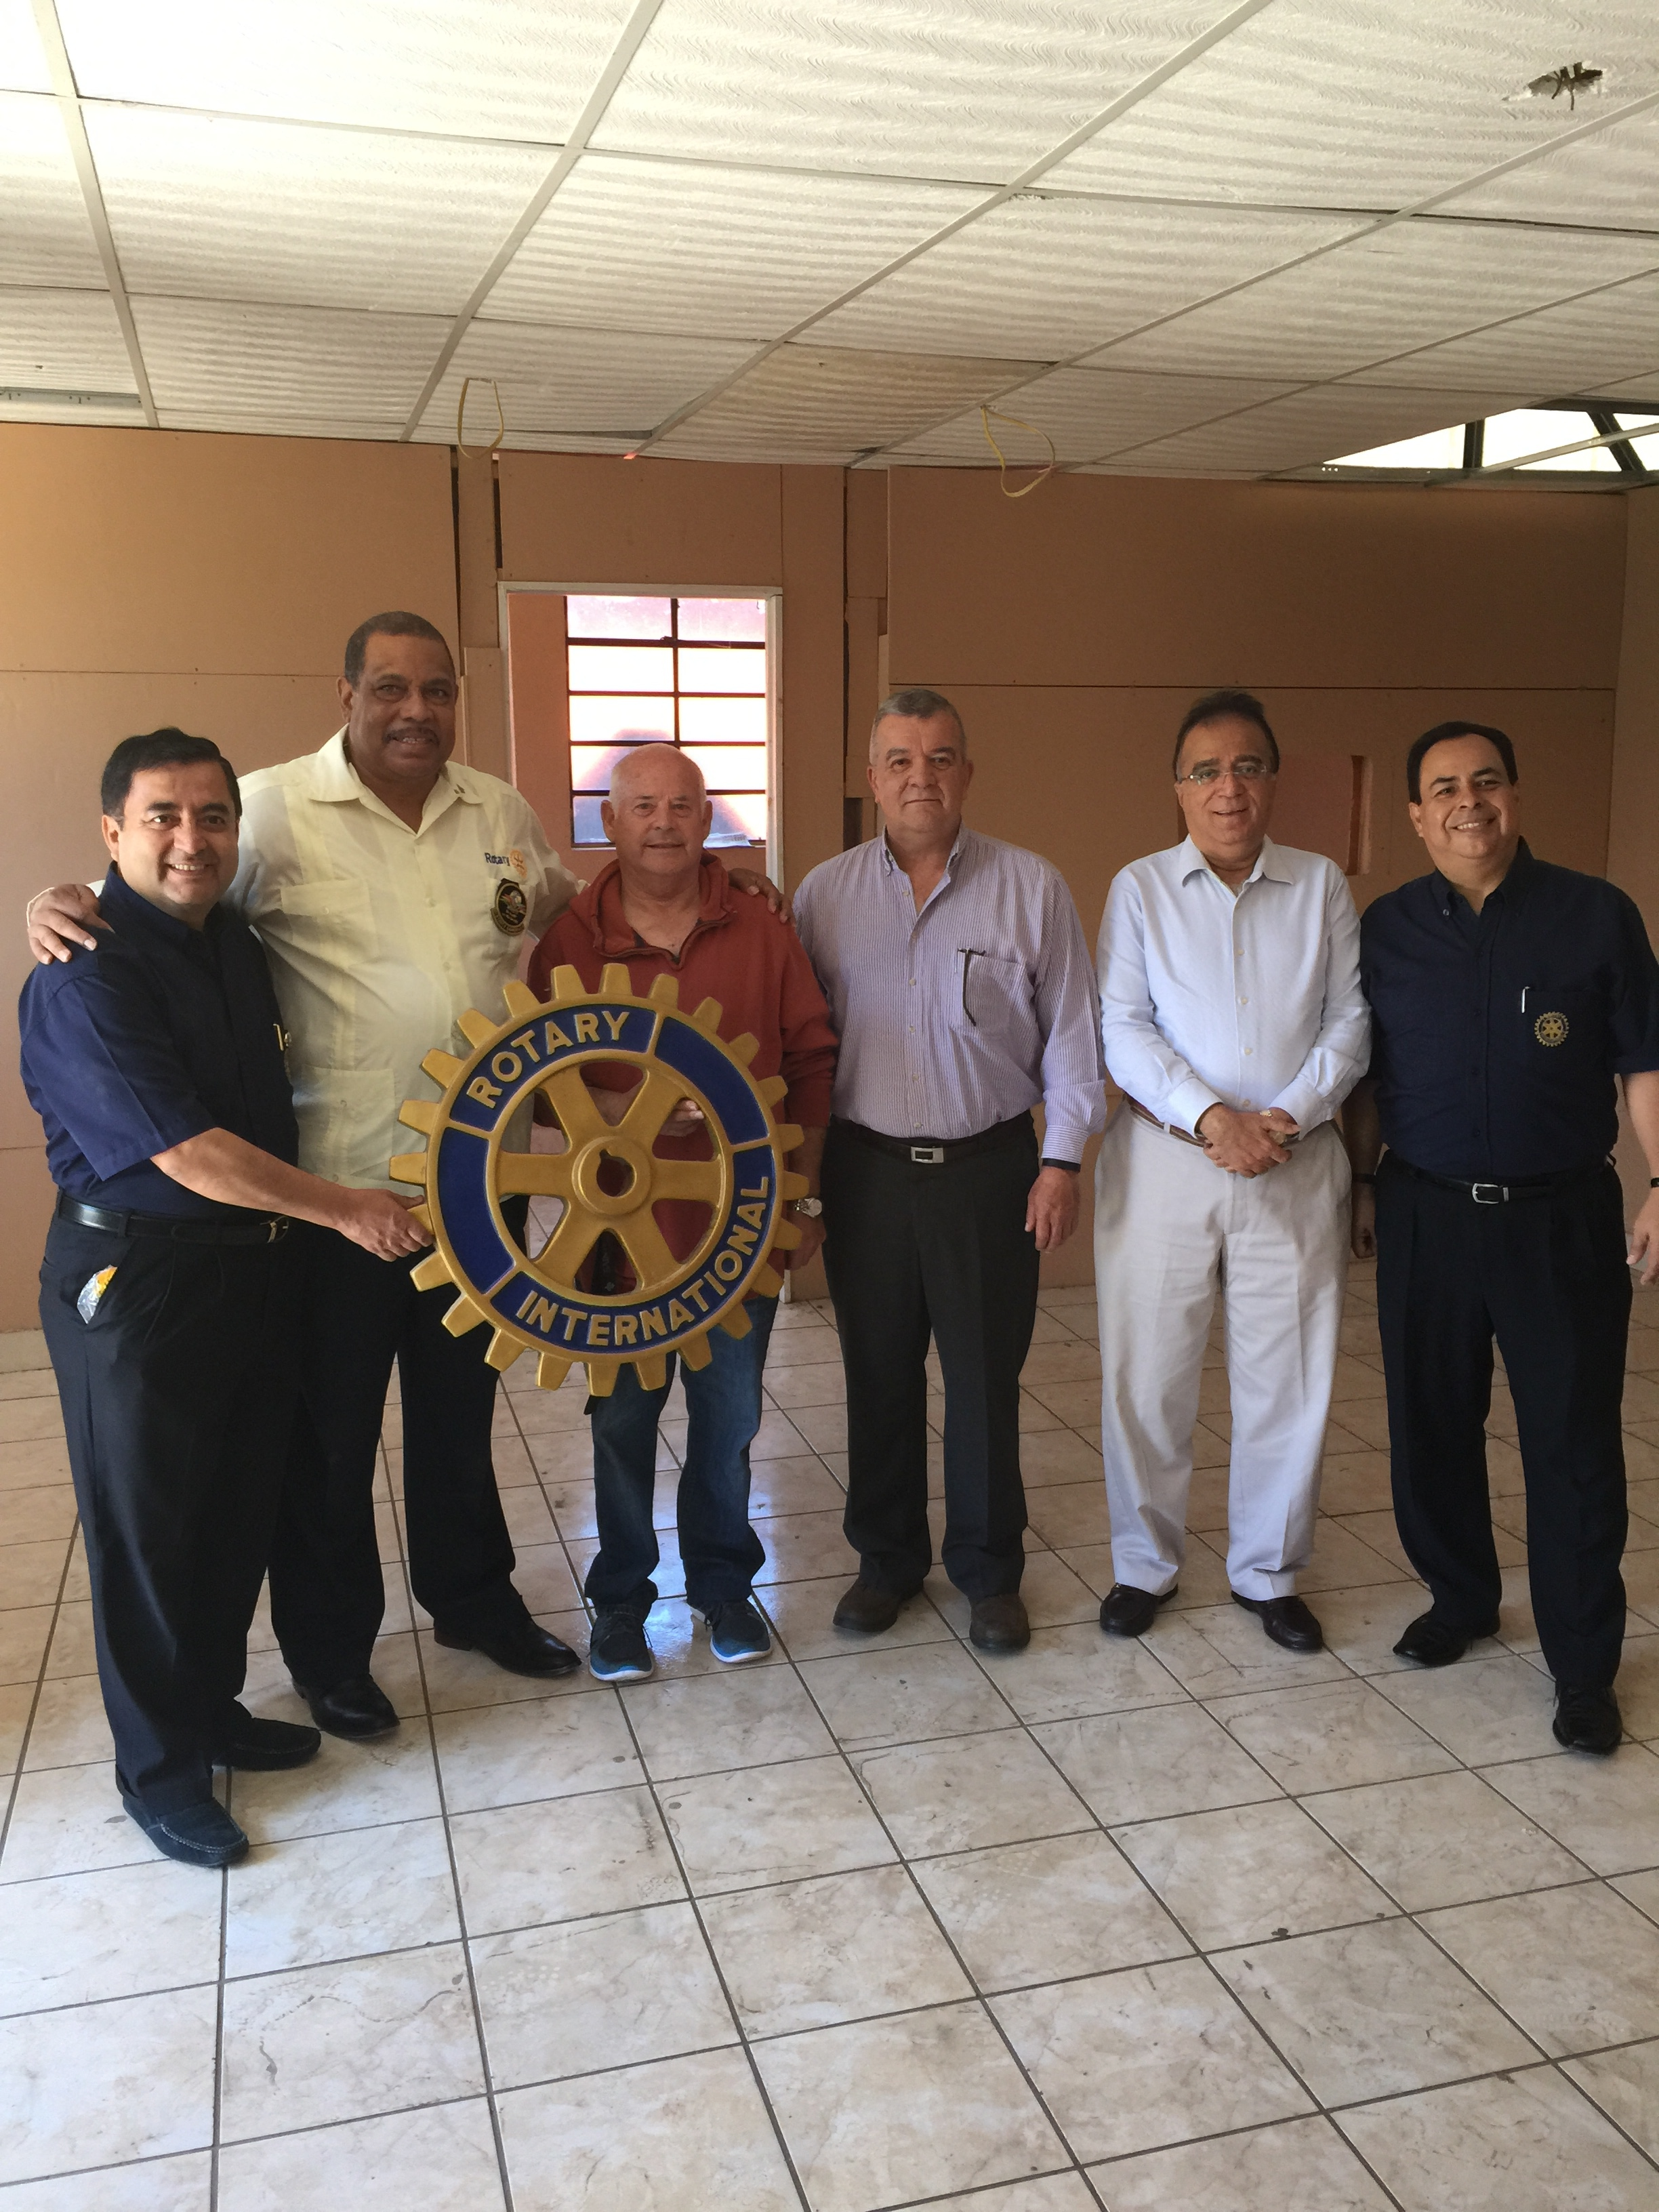 International Rotarians. The Governor is the large man